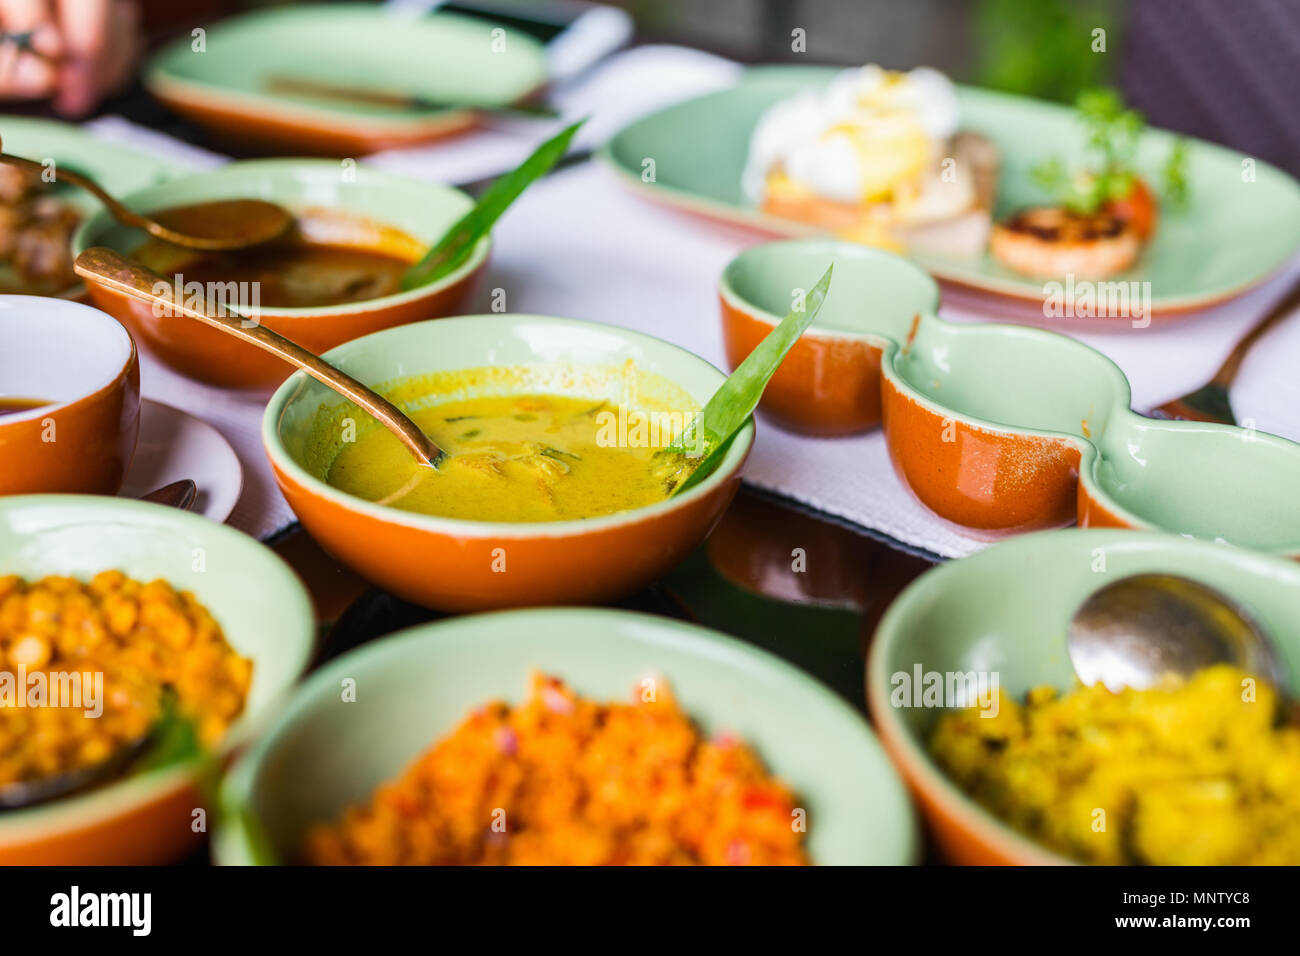 Variety of Sri Lankan curry in bowls on table - Stock Image